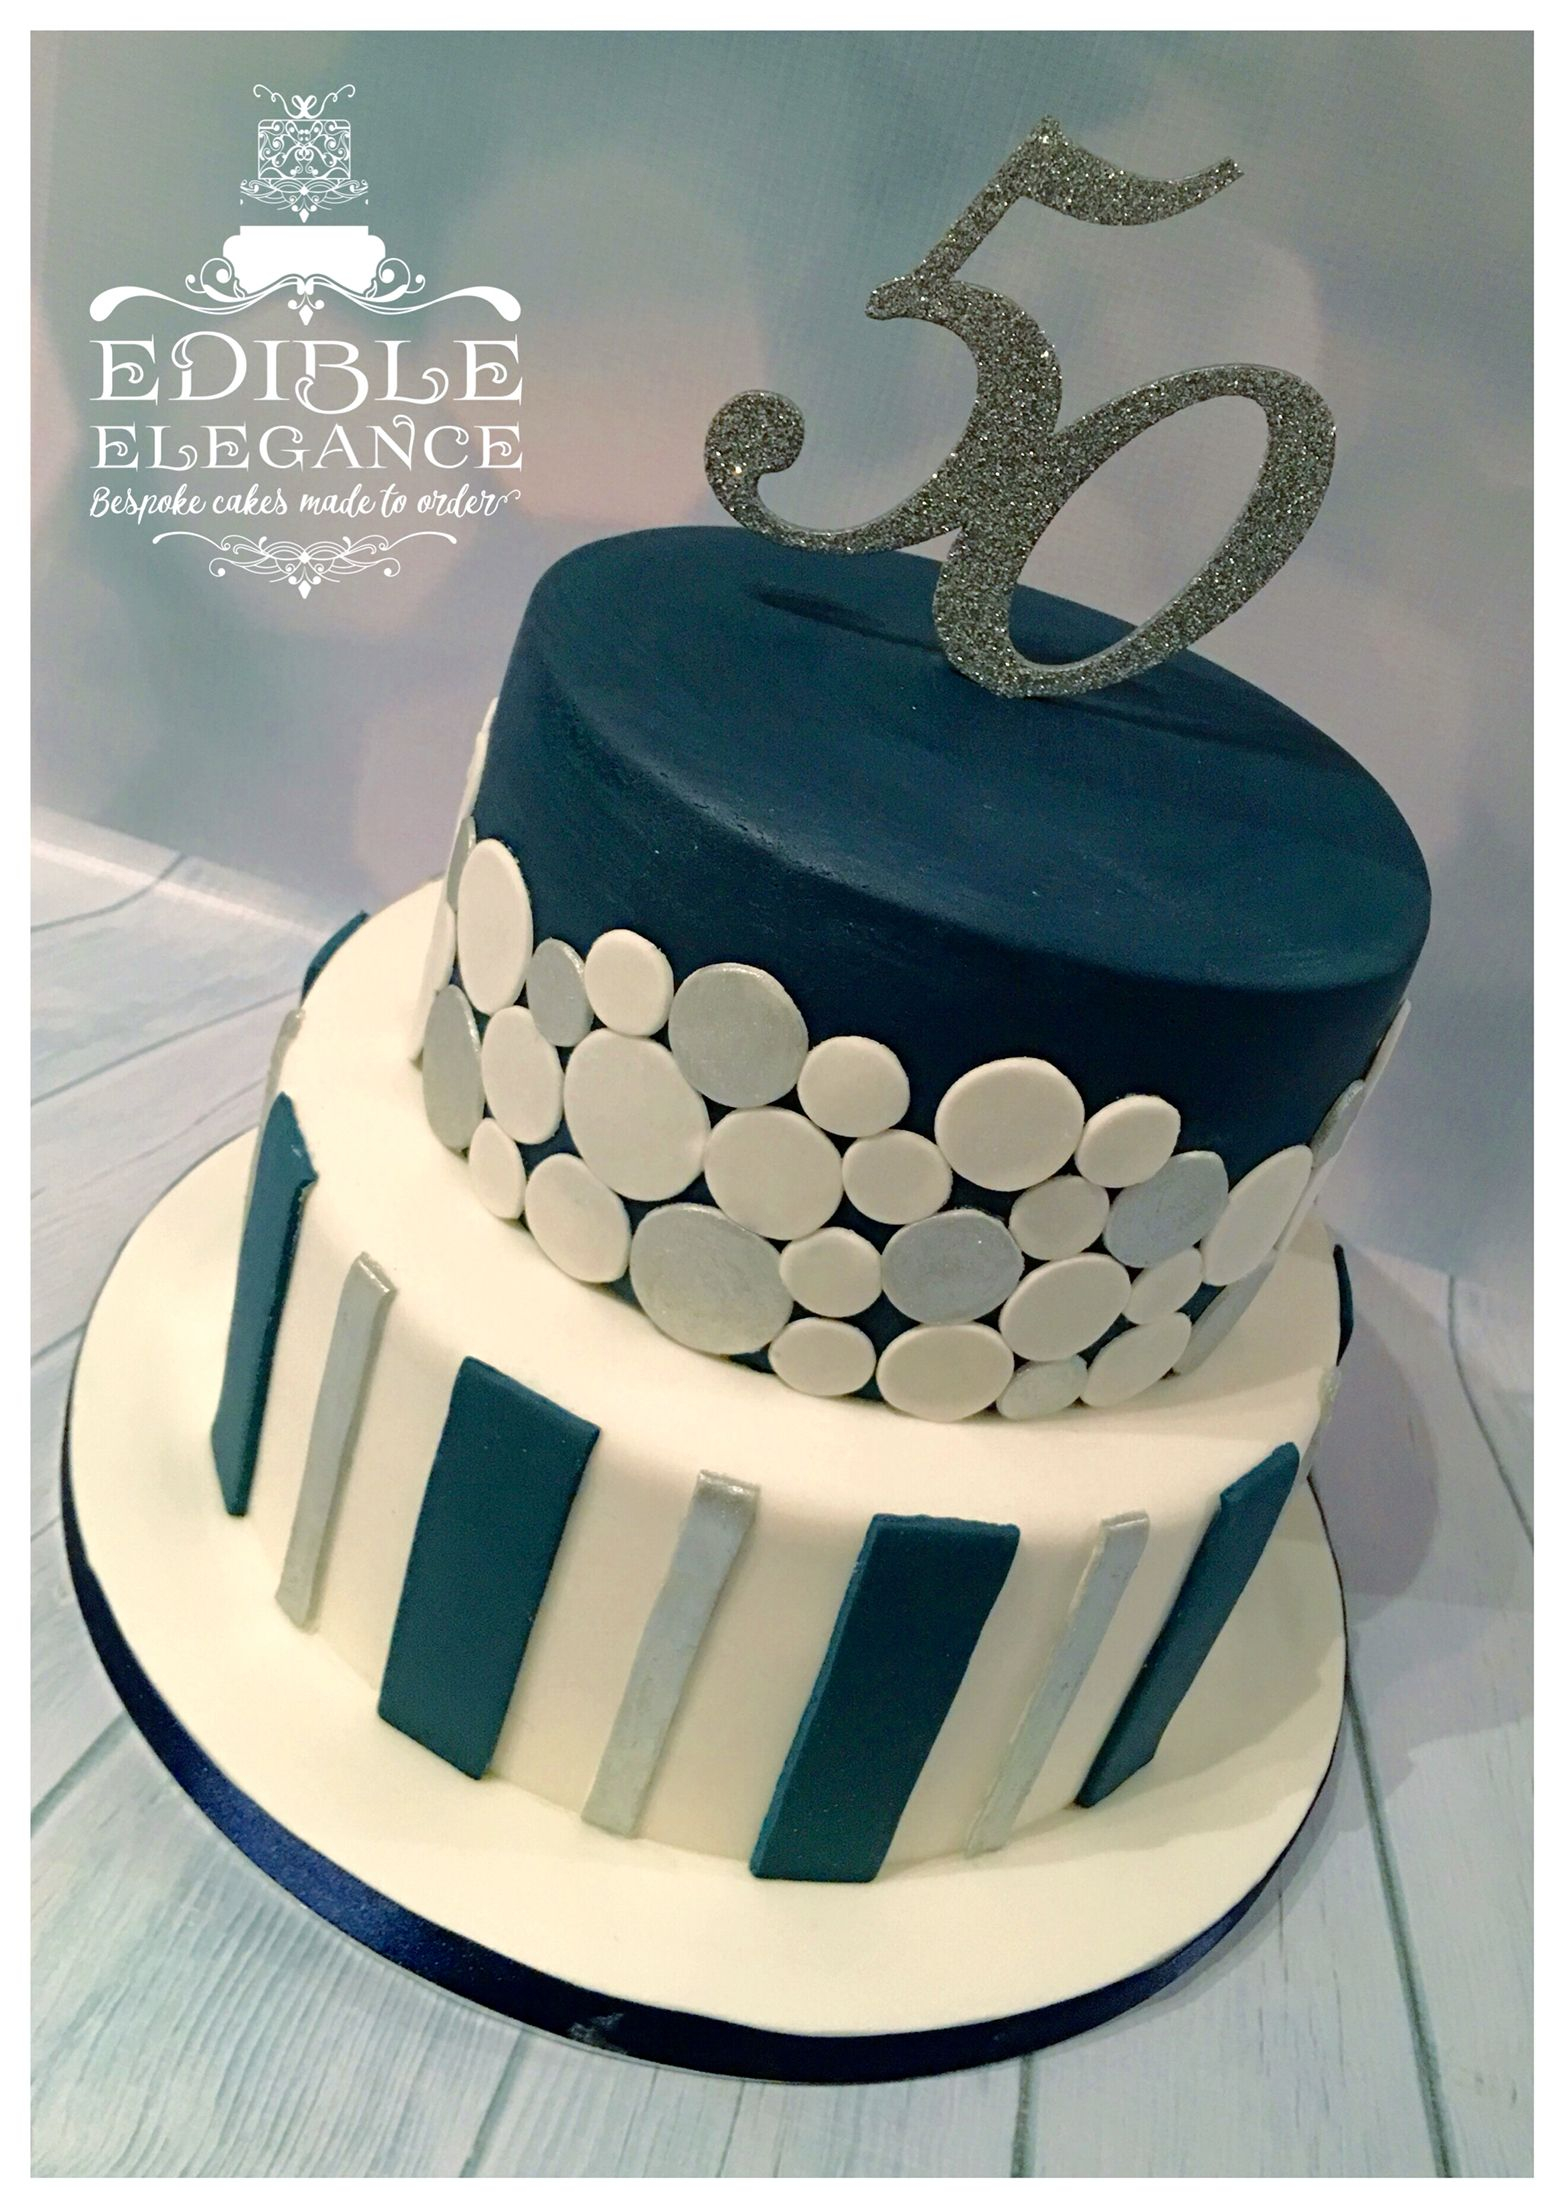 Birthday Cake Ideas For Adults 50th Contemporary Design In Masculine Blue White And